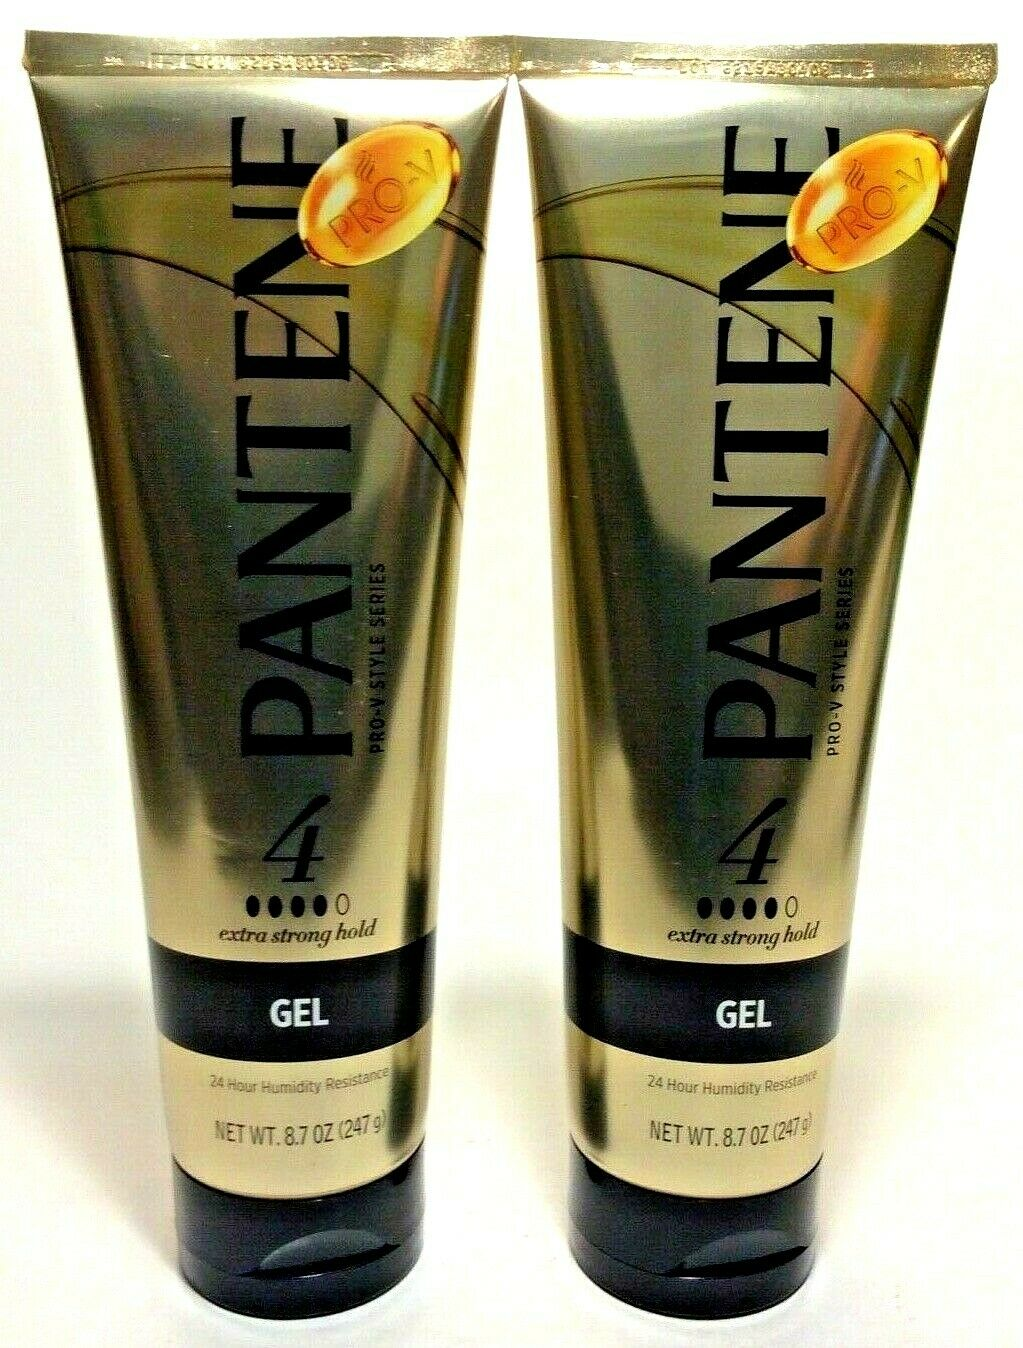 Pantene Pro-V 4 Extra Strong Hold Gel 8.7 oz 24 Hour Humidit